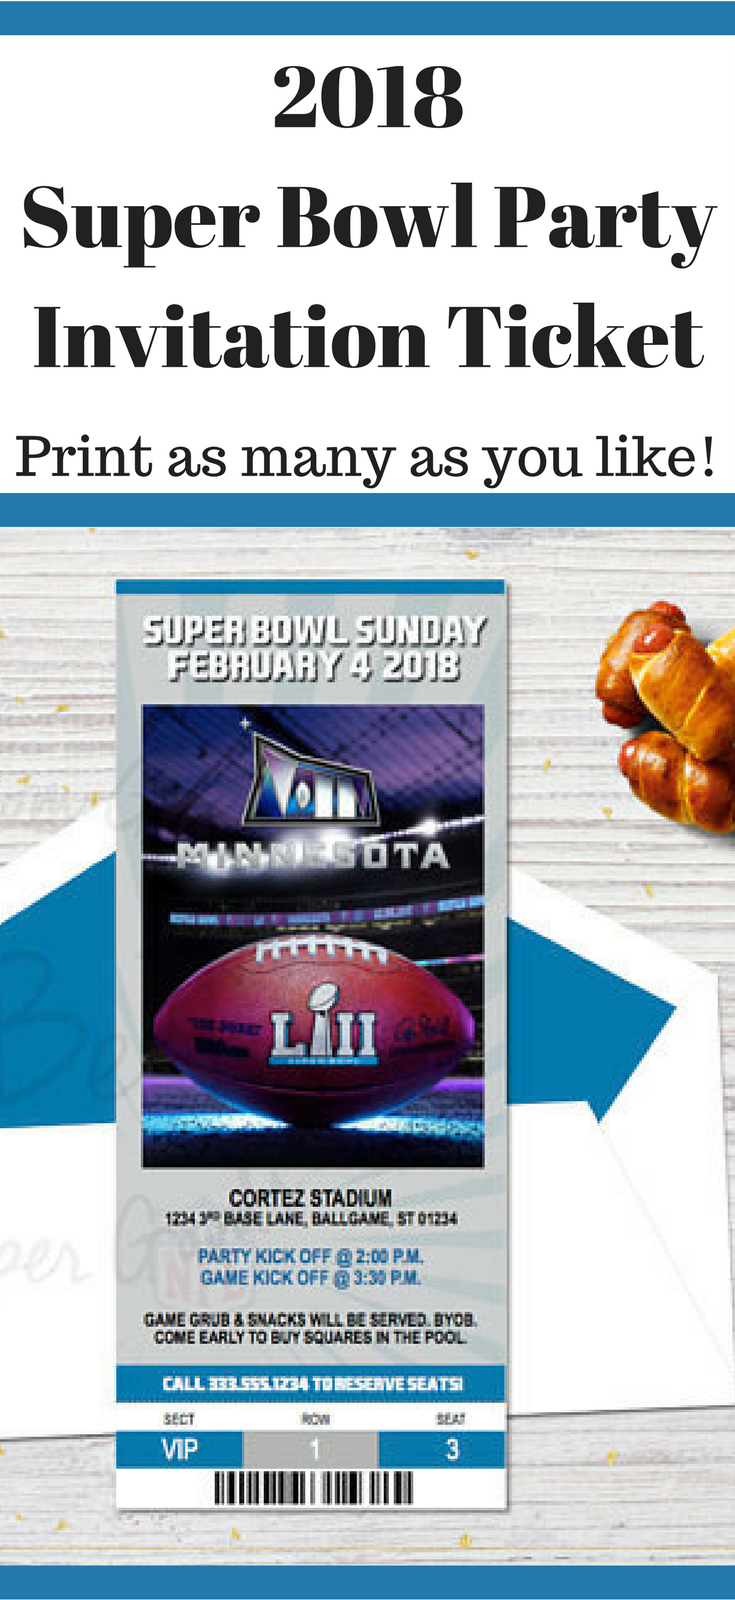 2018 Super Bowl Party Invitation Ticket | Printable Invitation #ad #superbowl #superbowlparty #printable #instantdownload #party #partyideas #invitation